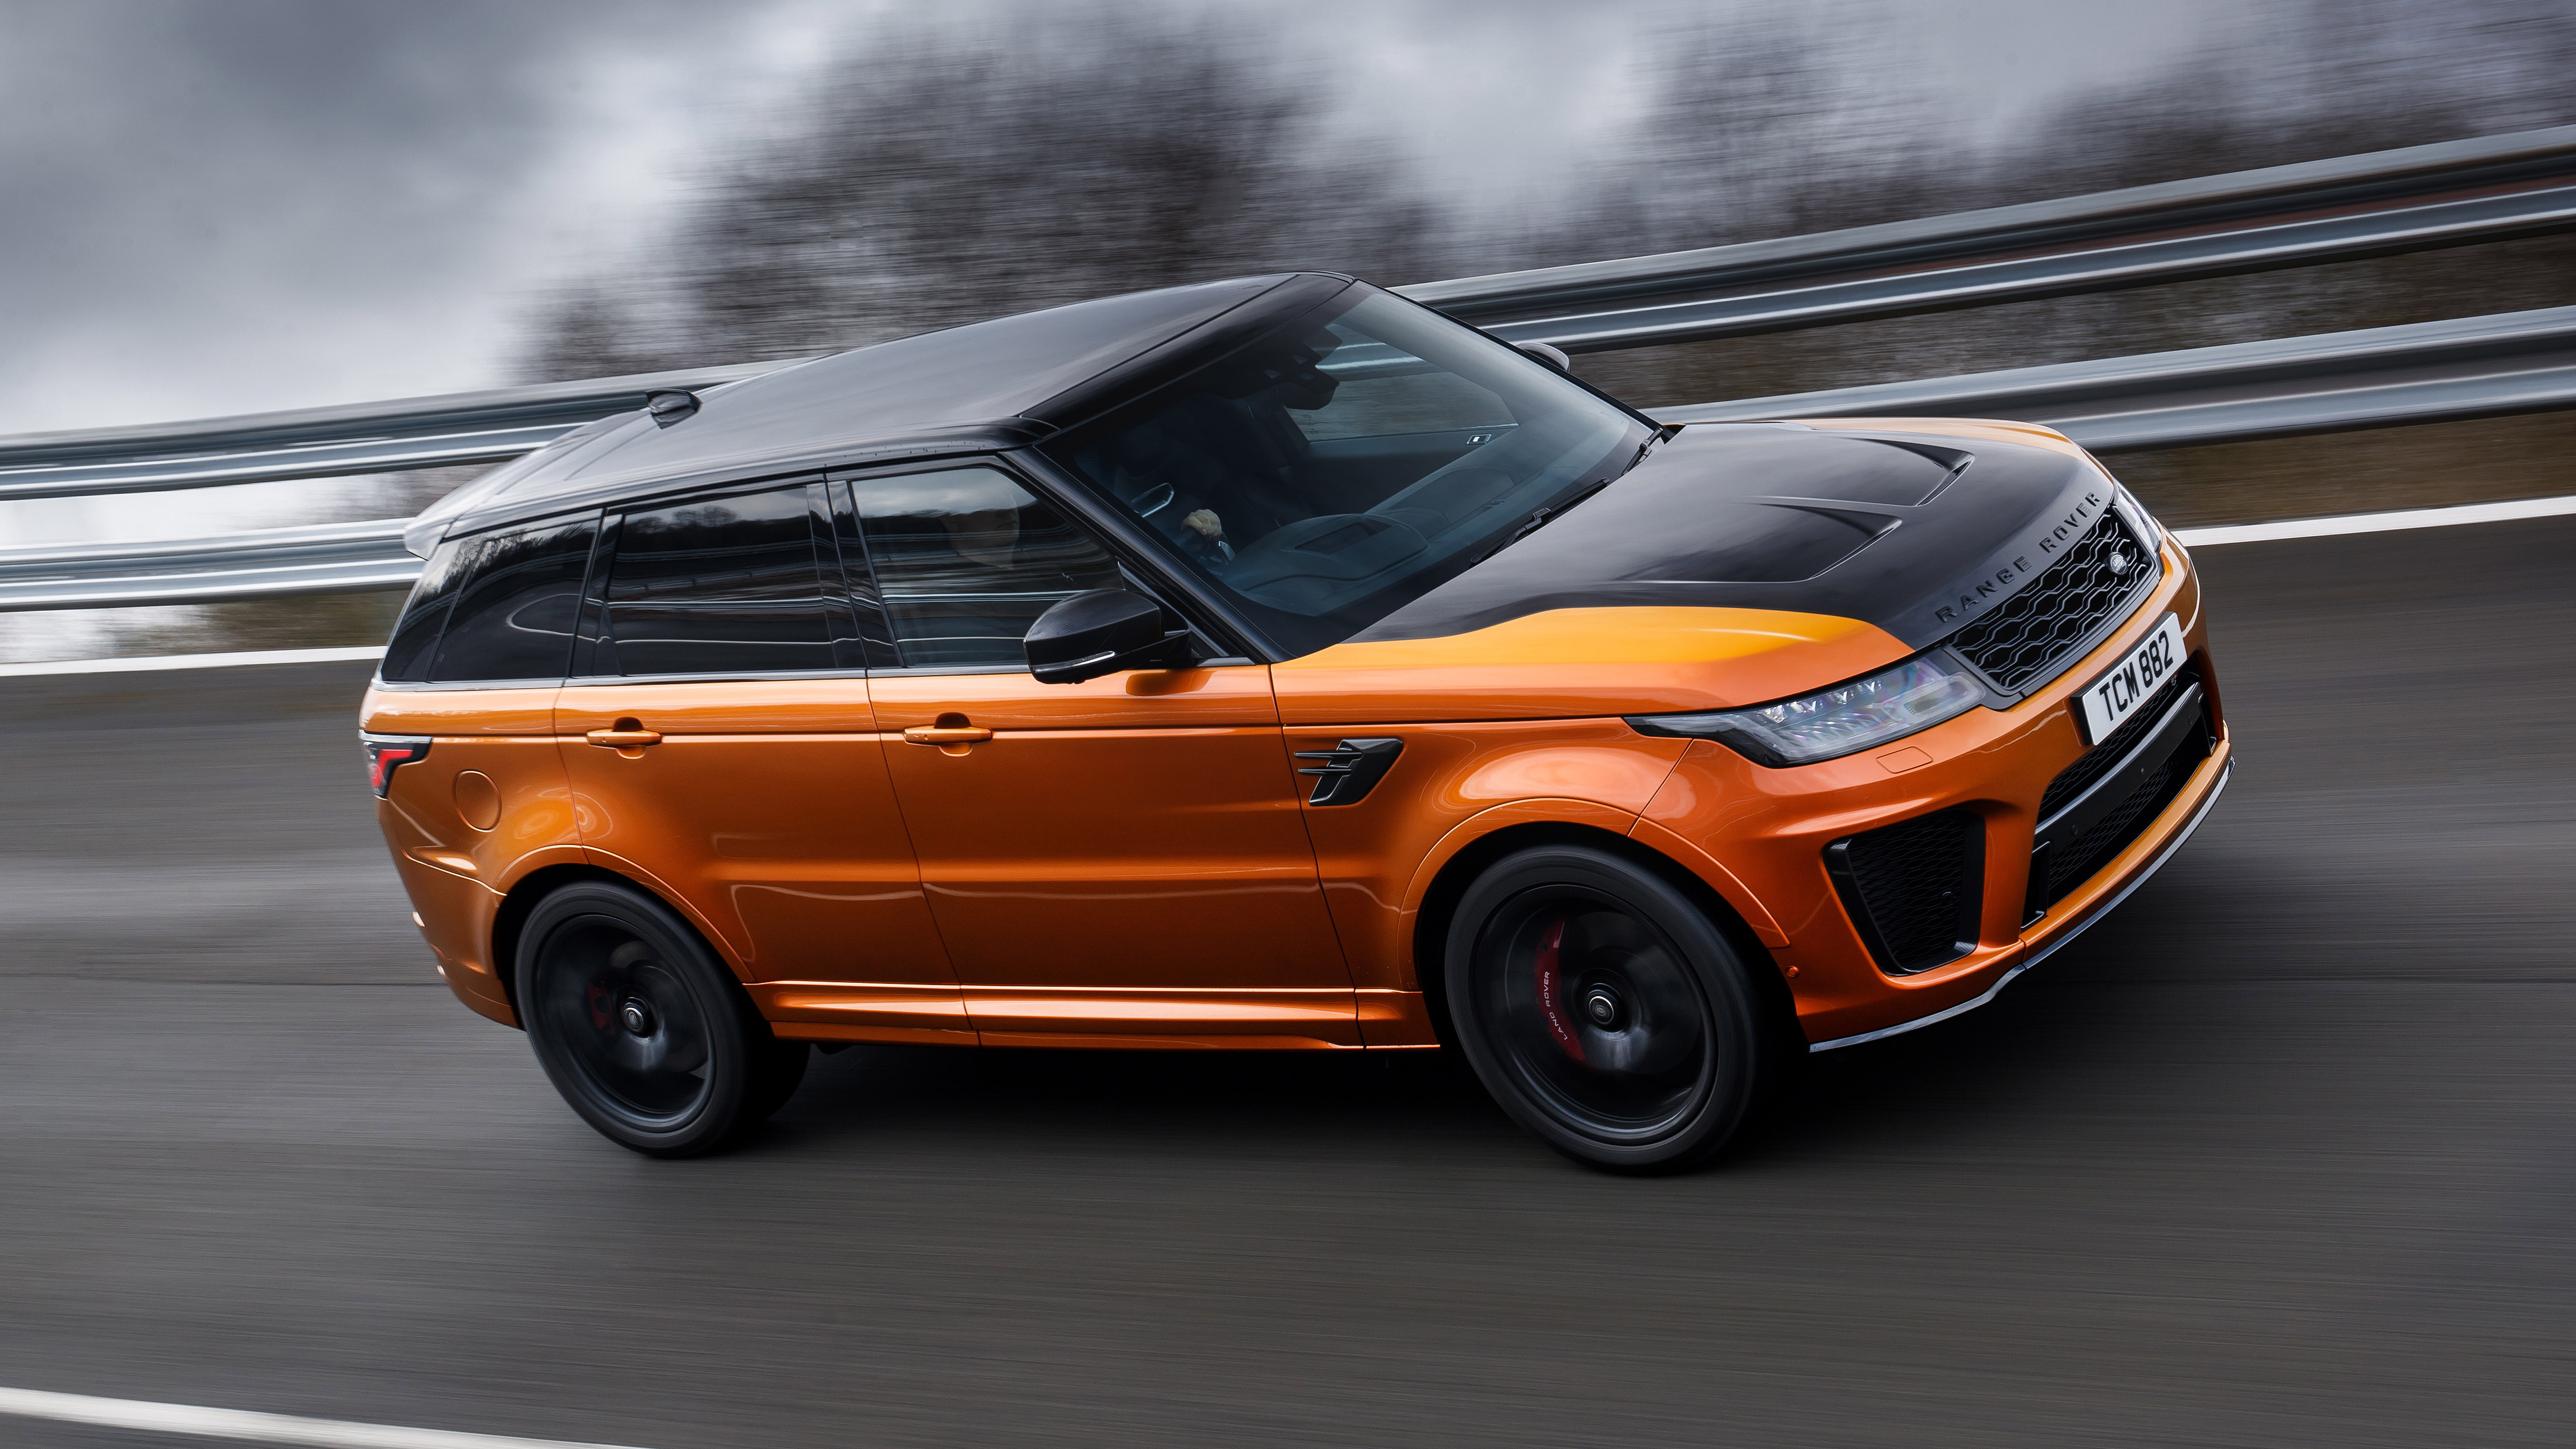 Range Rover Sport SVR review: mad, 567bhp SUV tested (2018-2019